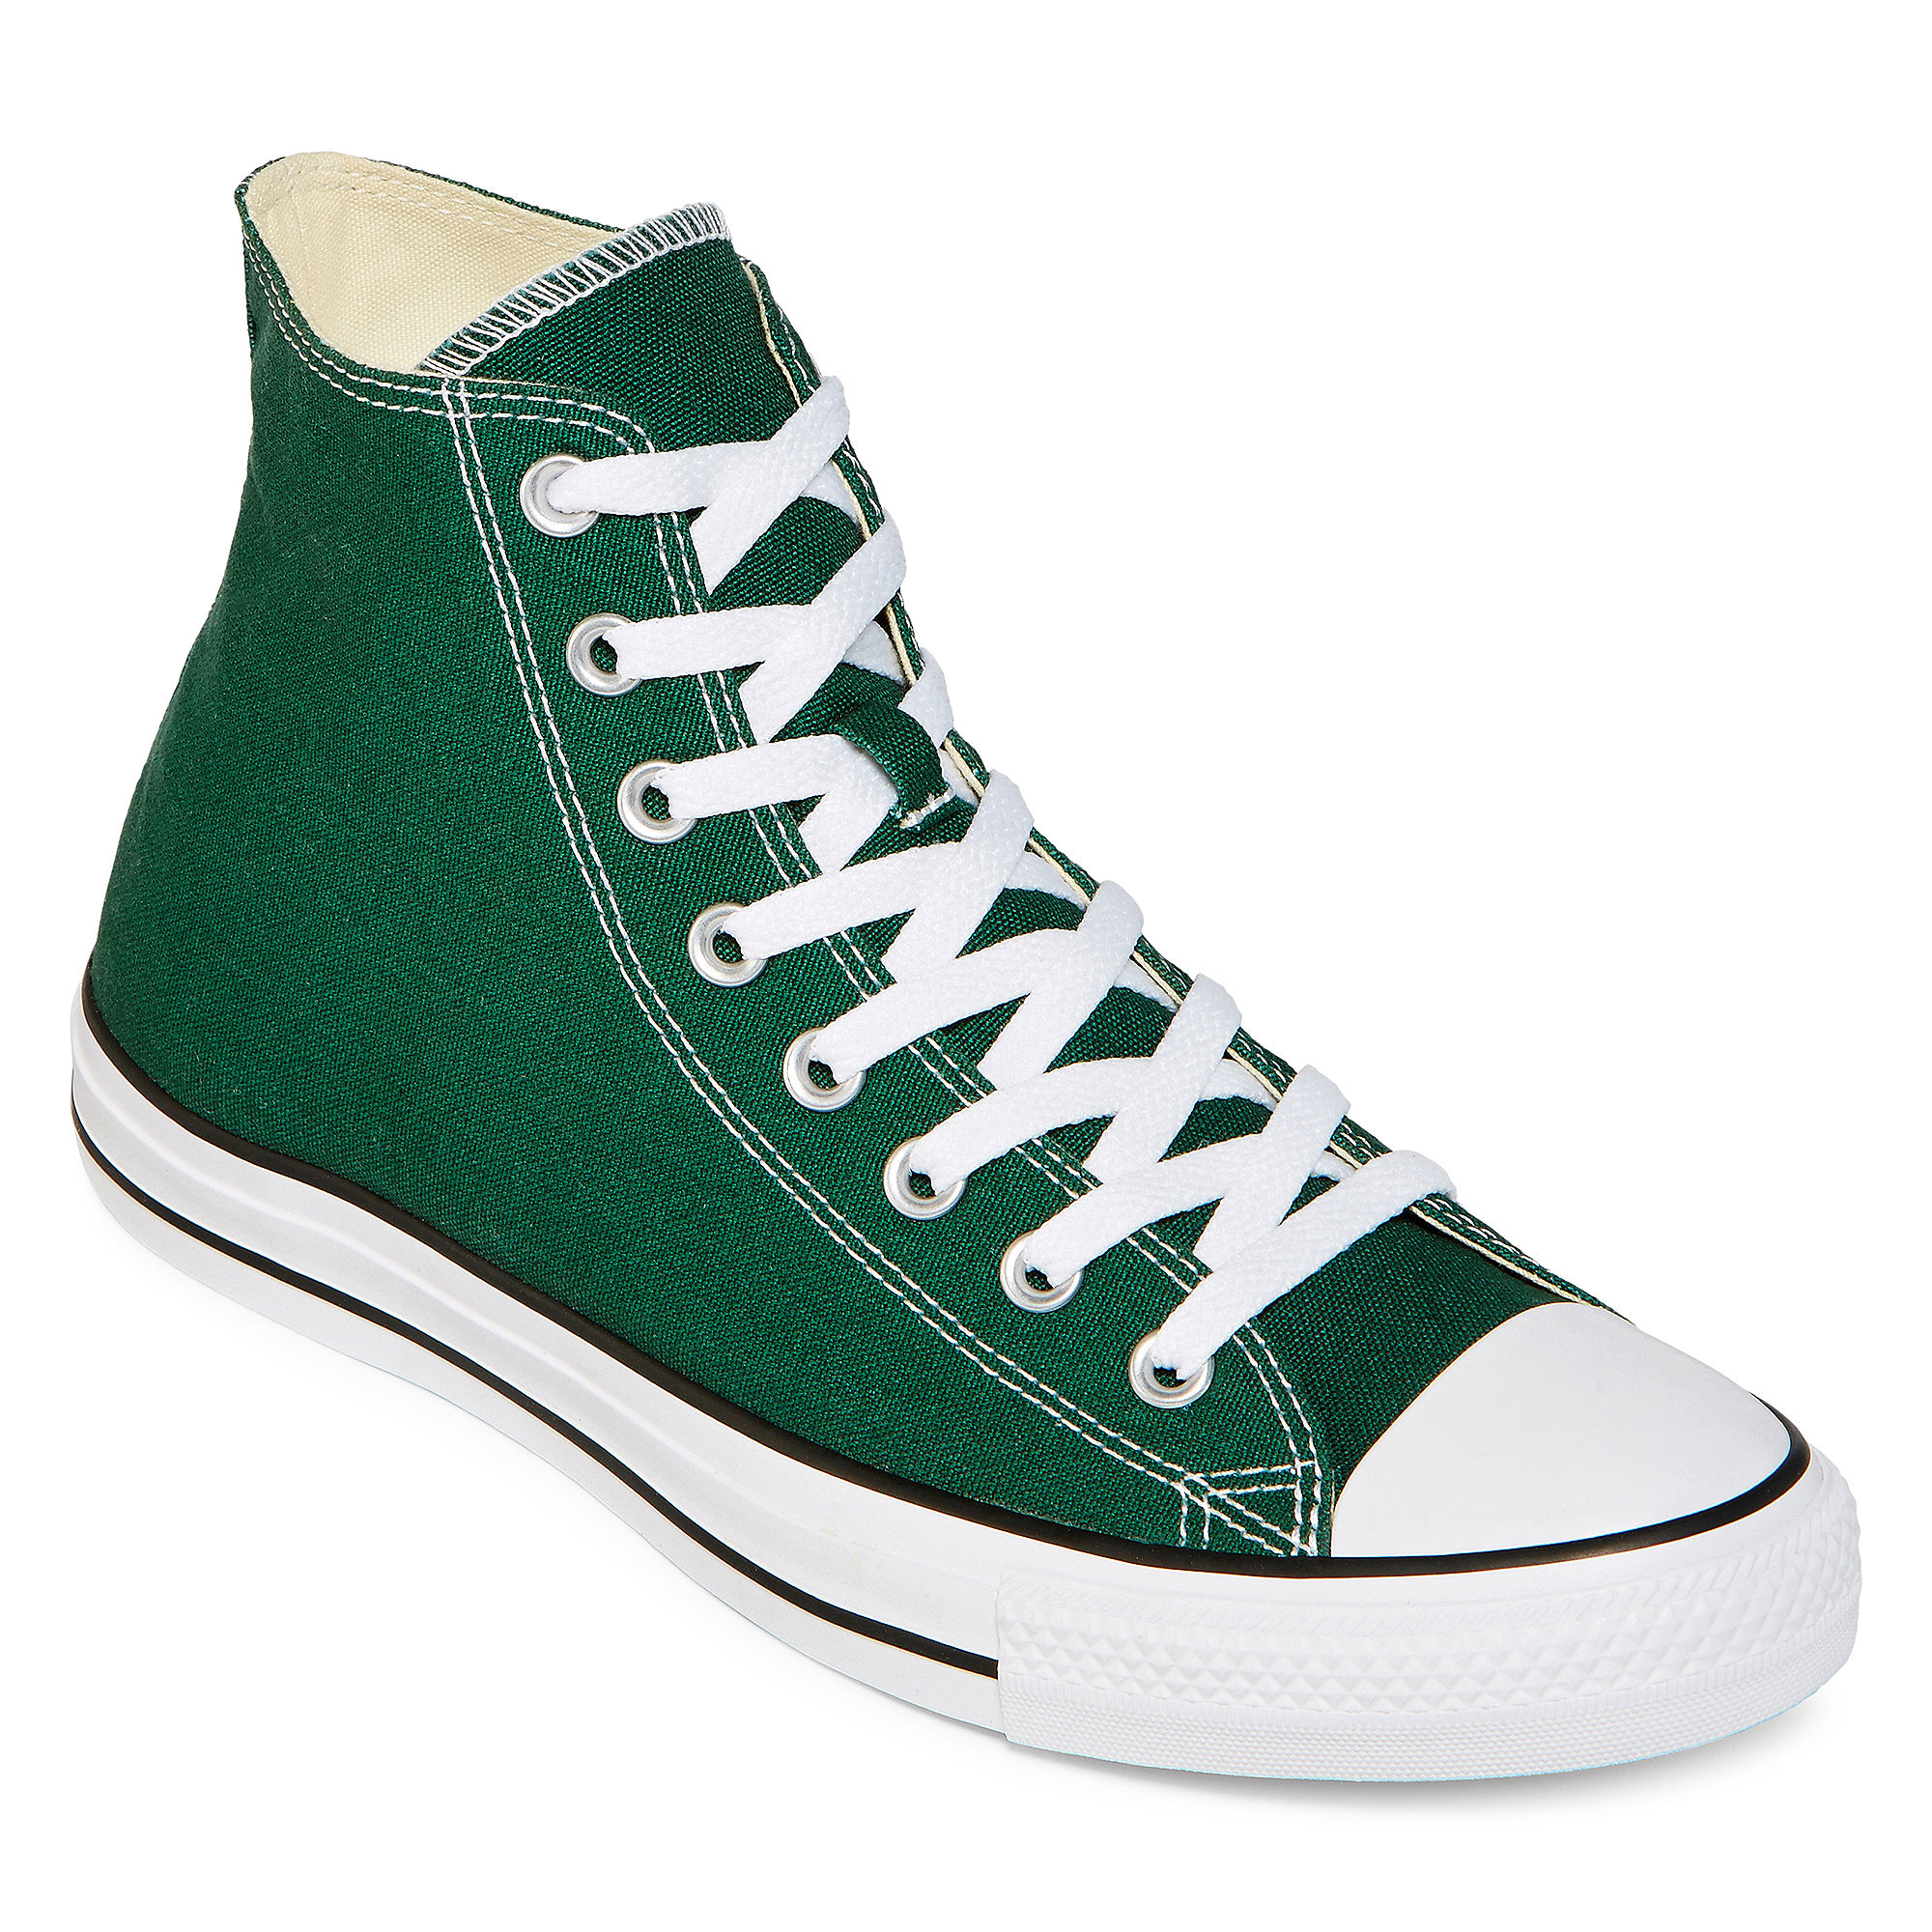 UPC 886956166126 - Converse Chuck Taylor All Star High-Top ...